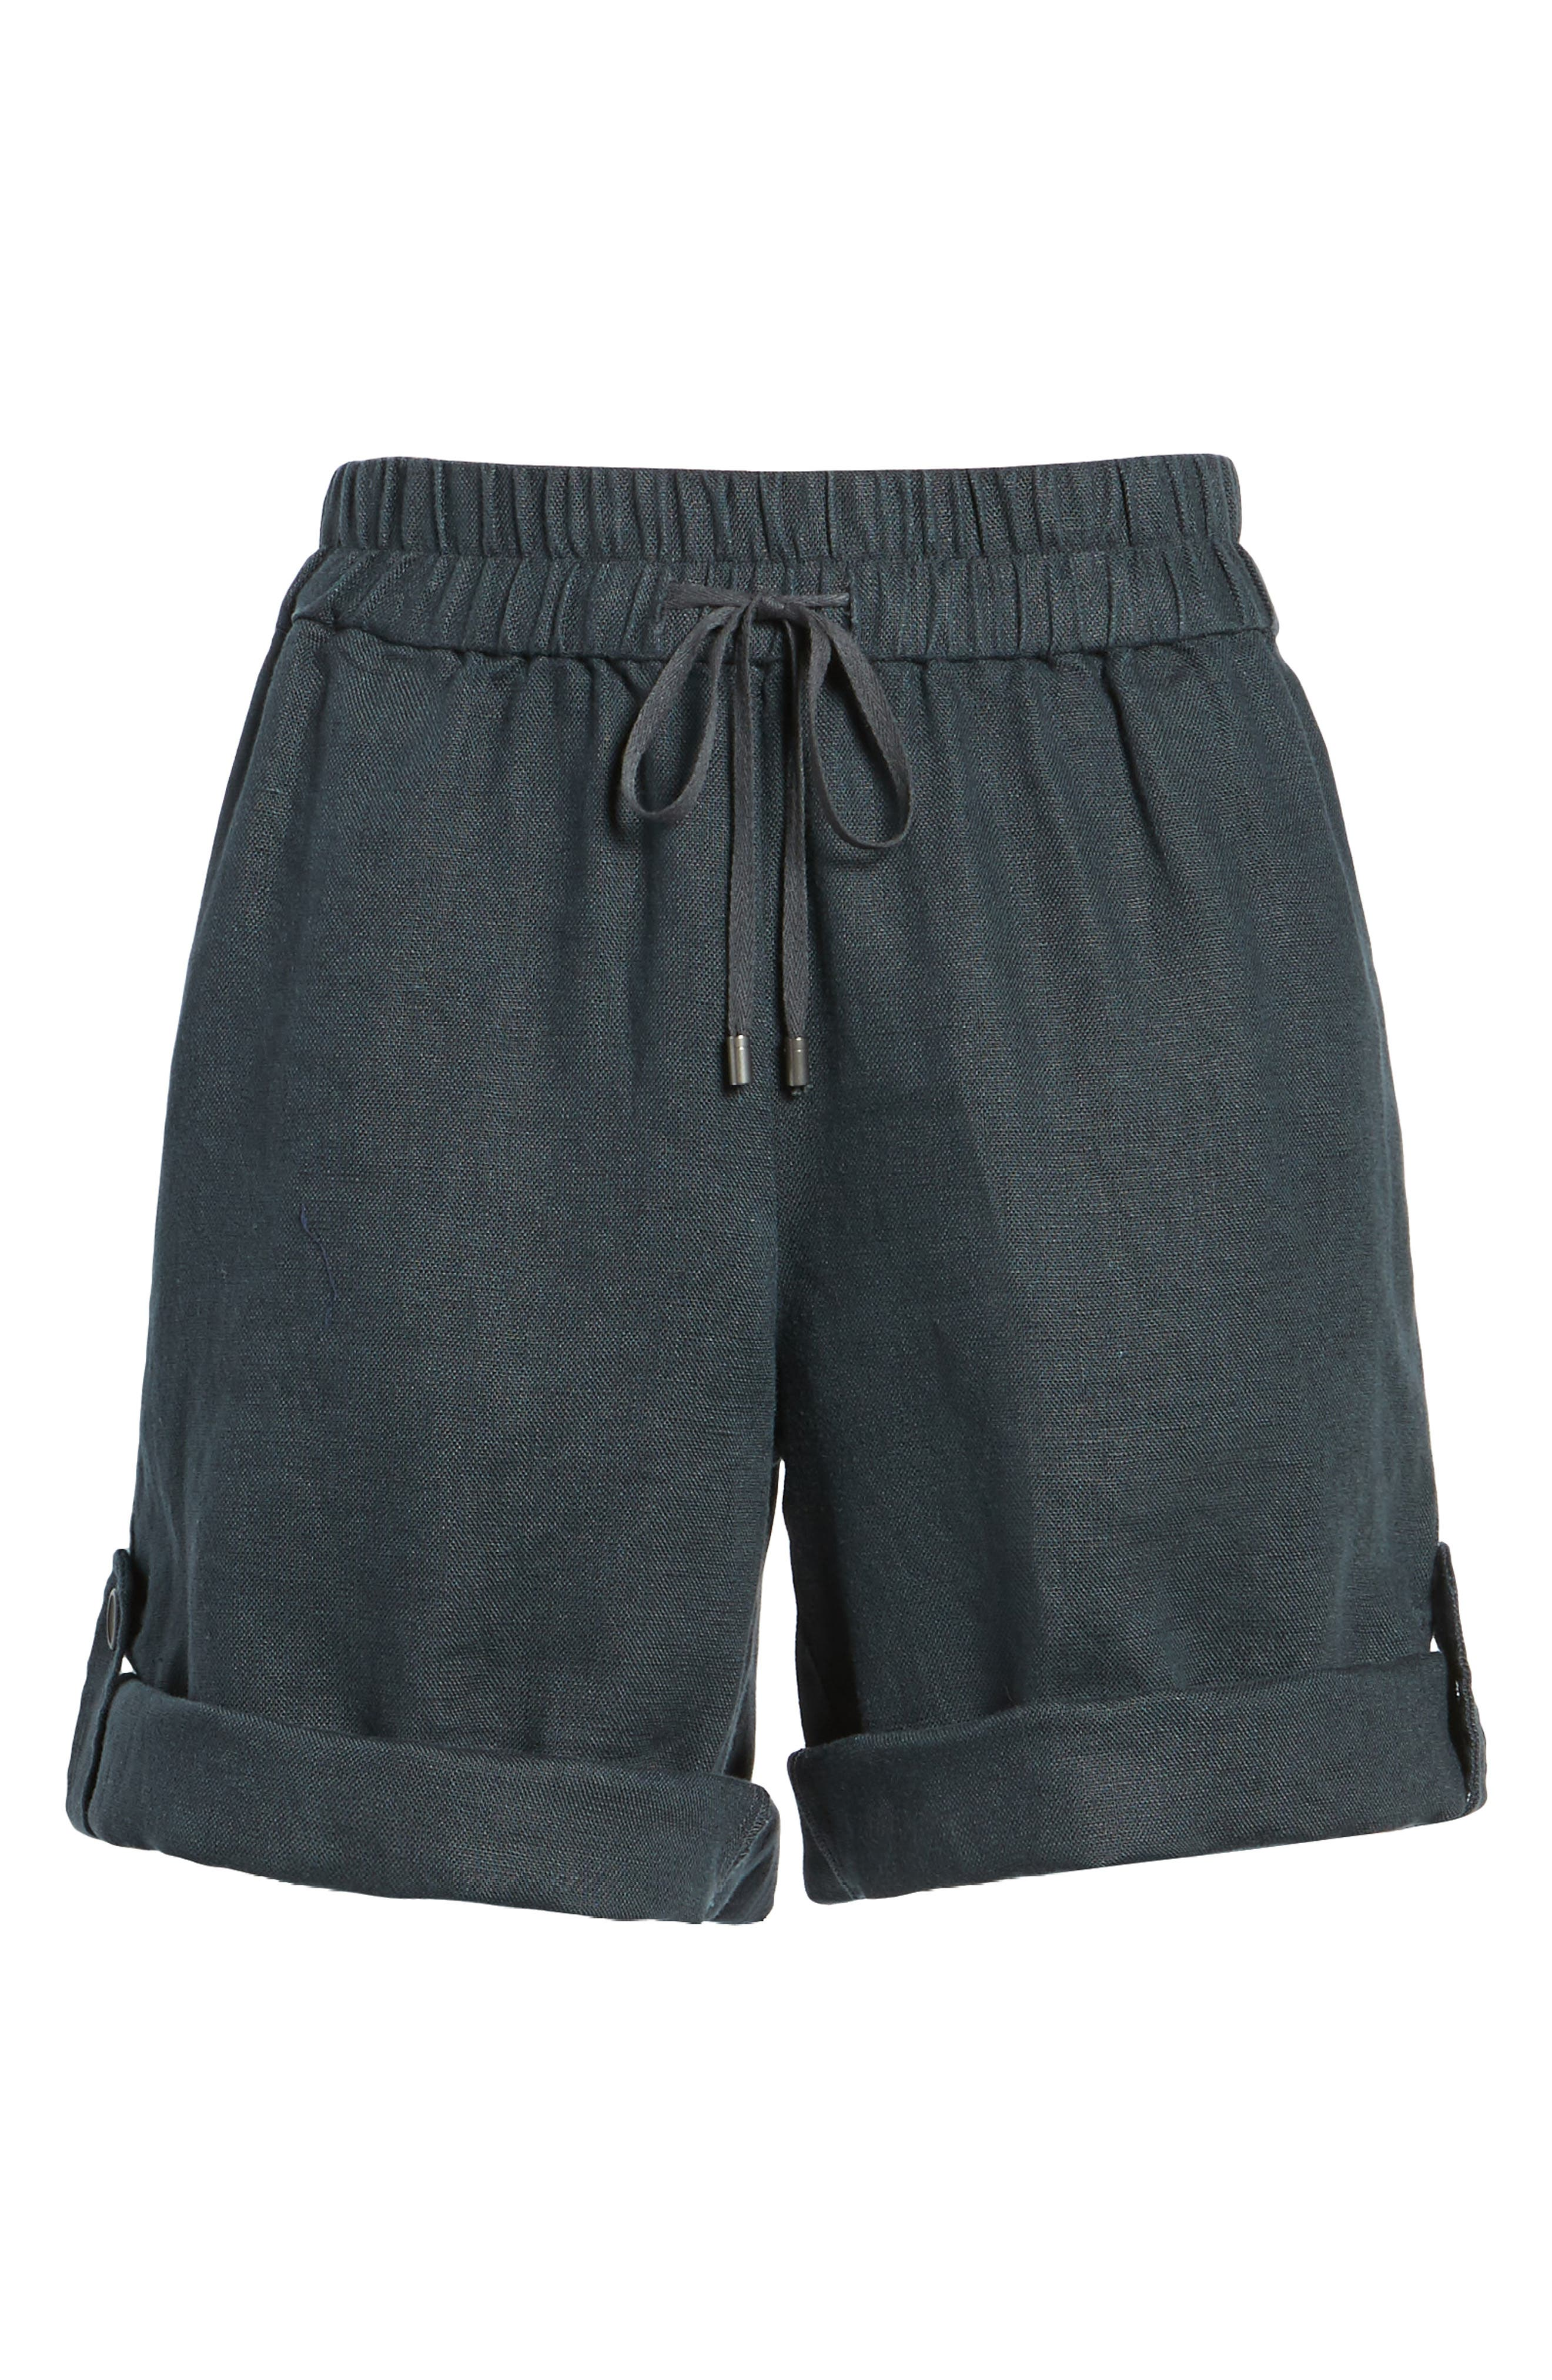 Rolled Organic Linen Shorts,                             Alternate thumbnail 6, color,                             Graphite